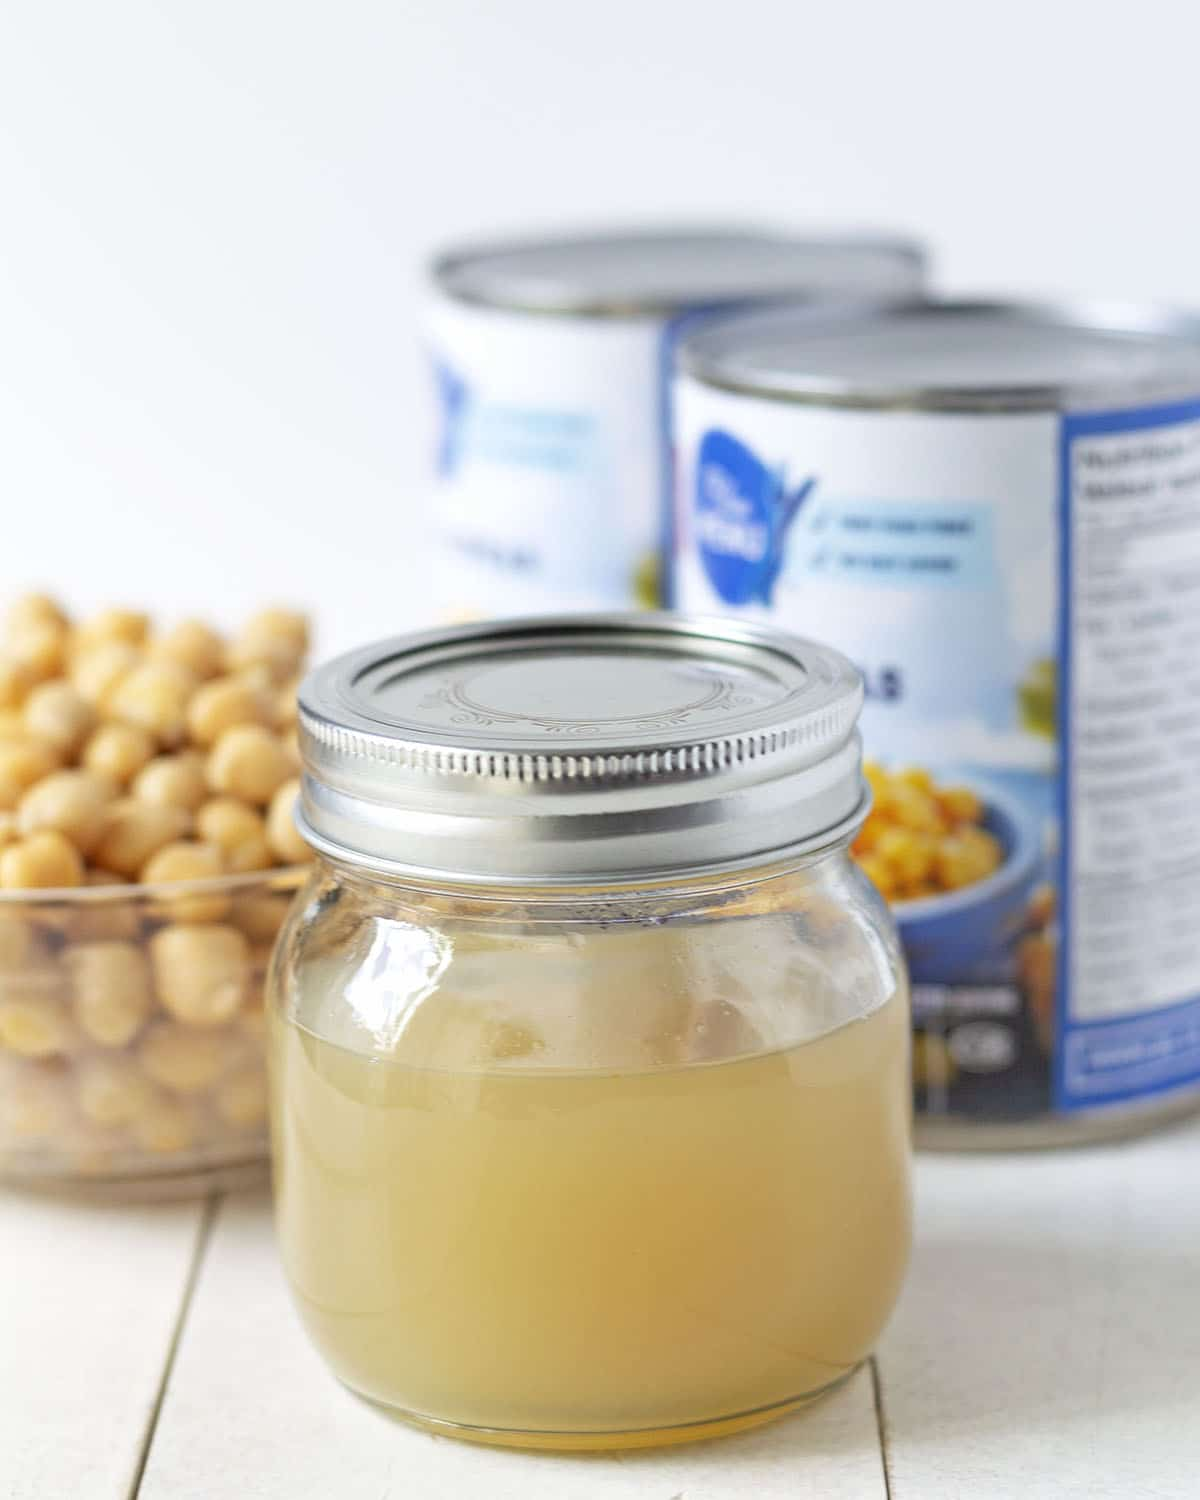 Image shows a jar of aquafaba egg replacement sitting on a white table, two cans of chickpeas and a bowl of chickpeas sit behind the jar.